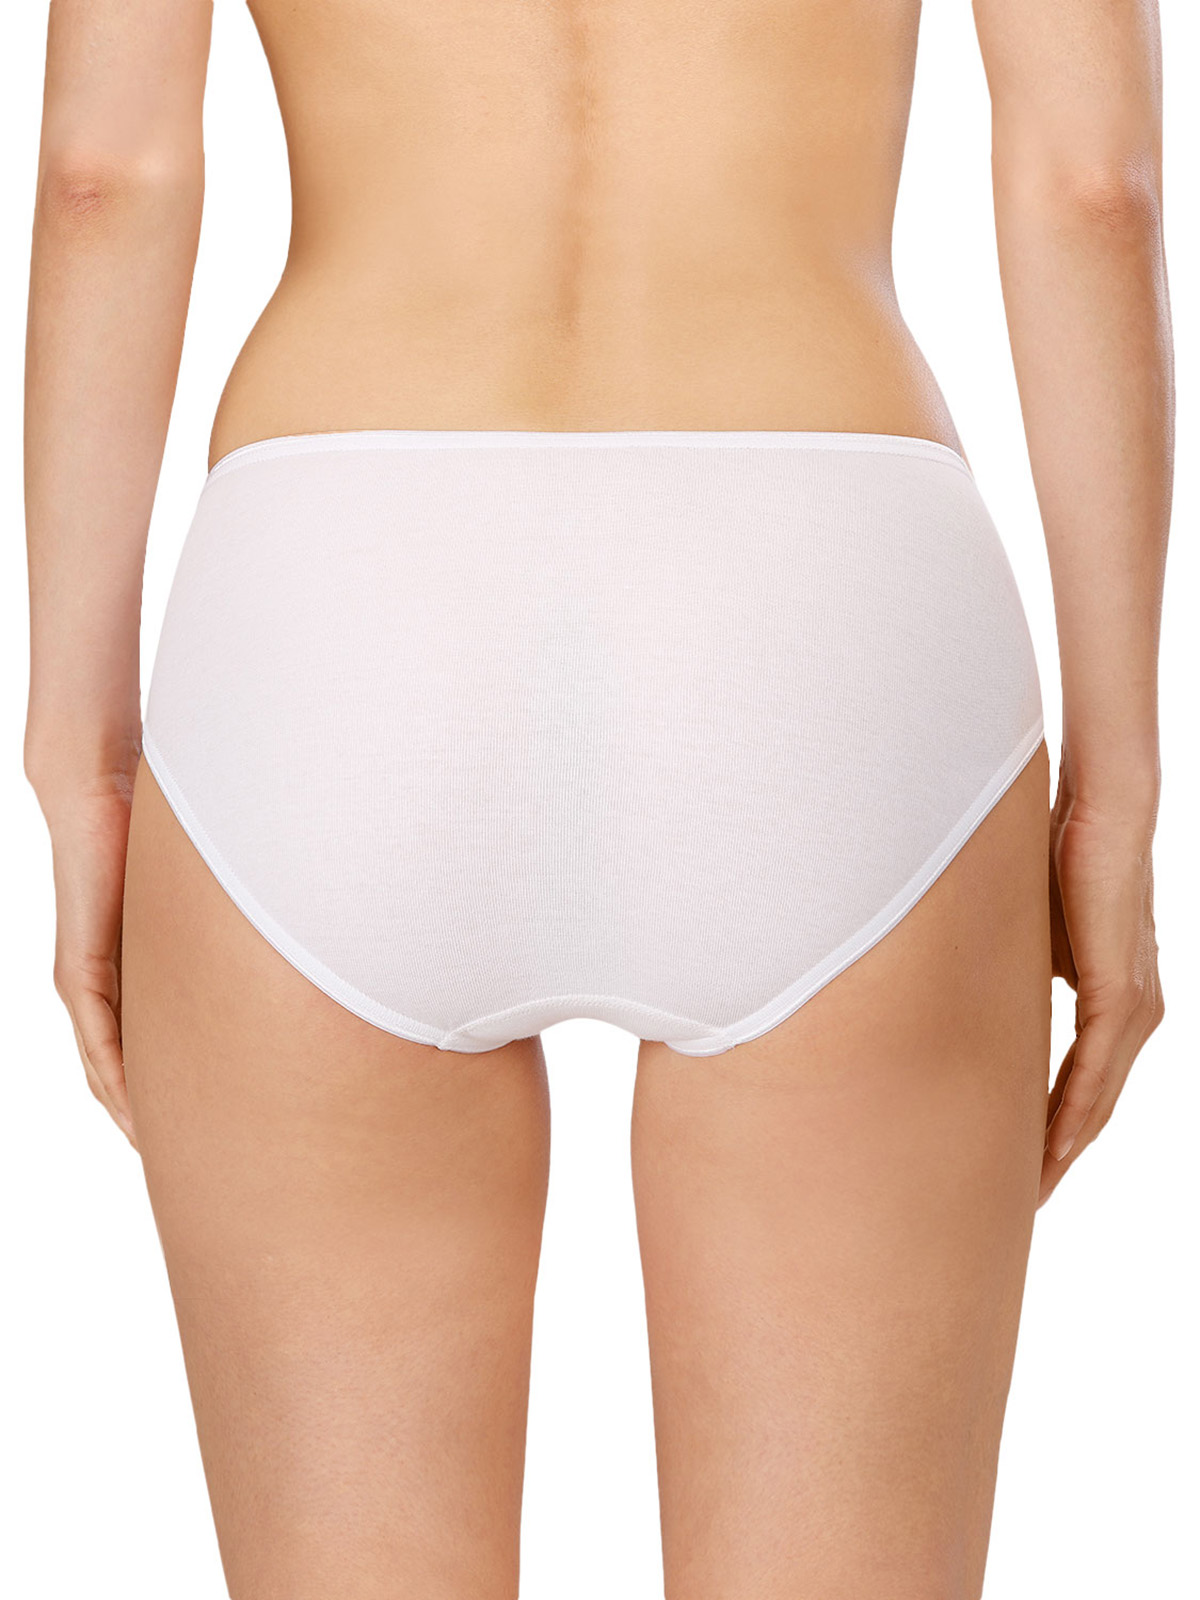 Naturana Women's Midi Brief 2102